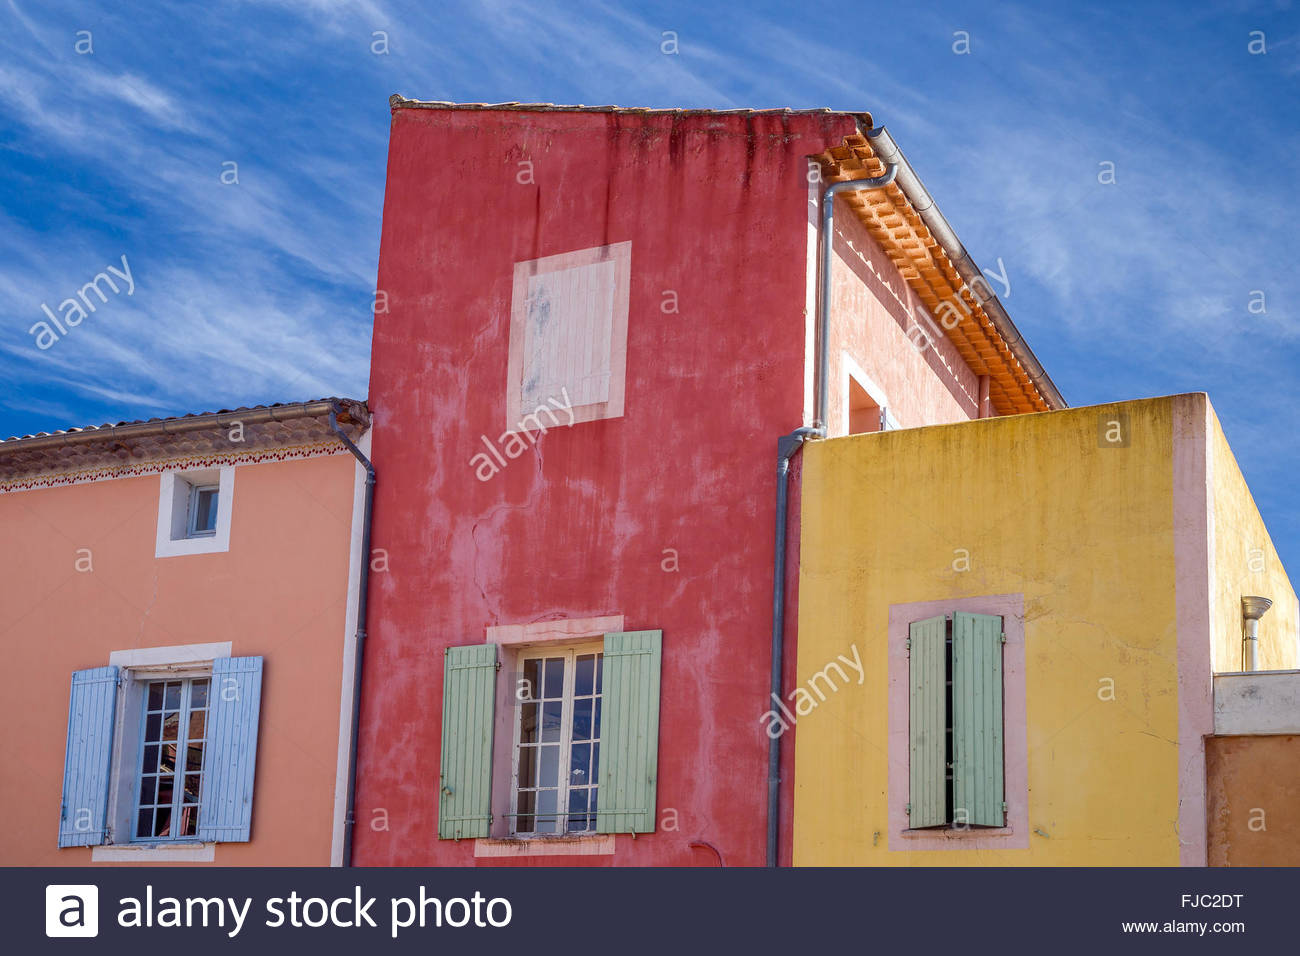 Colorful houses in Roussillon village - France Stock Photo